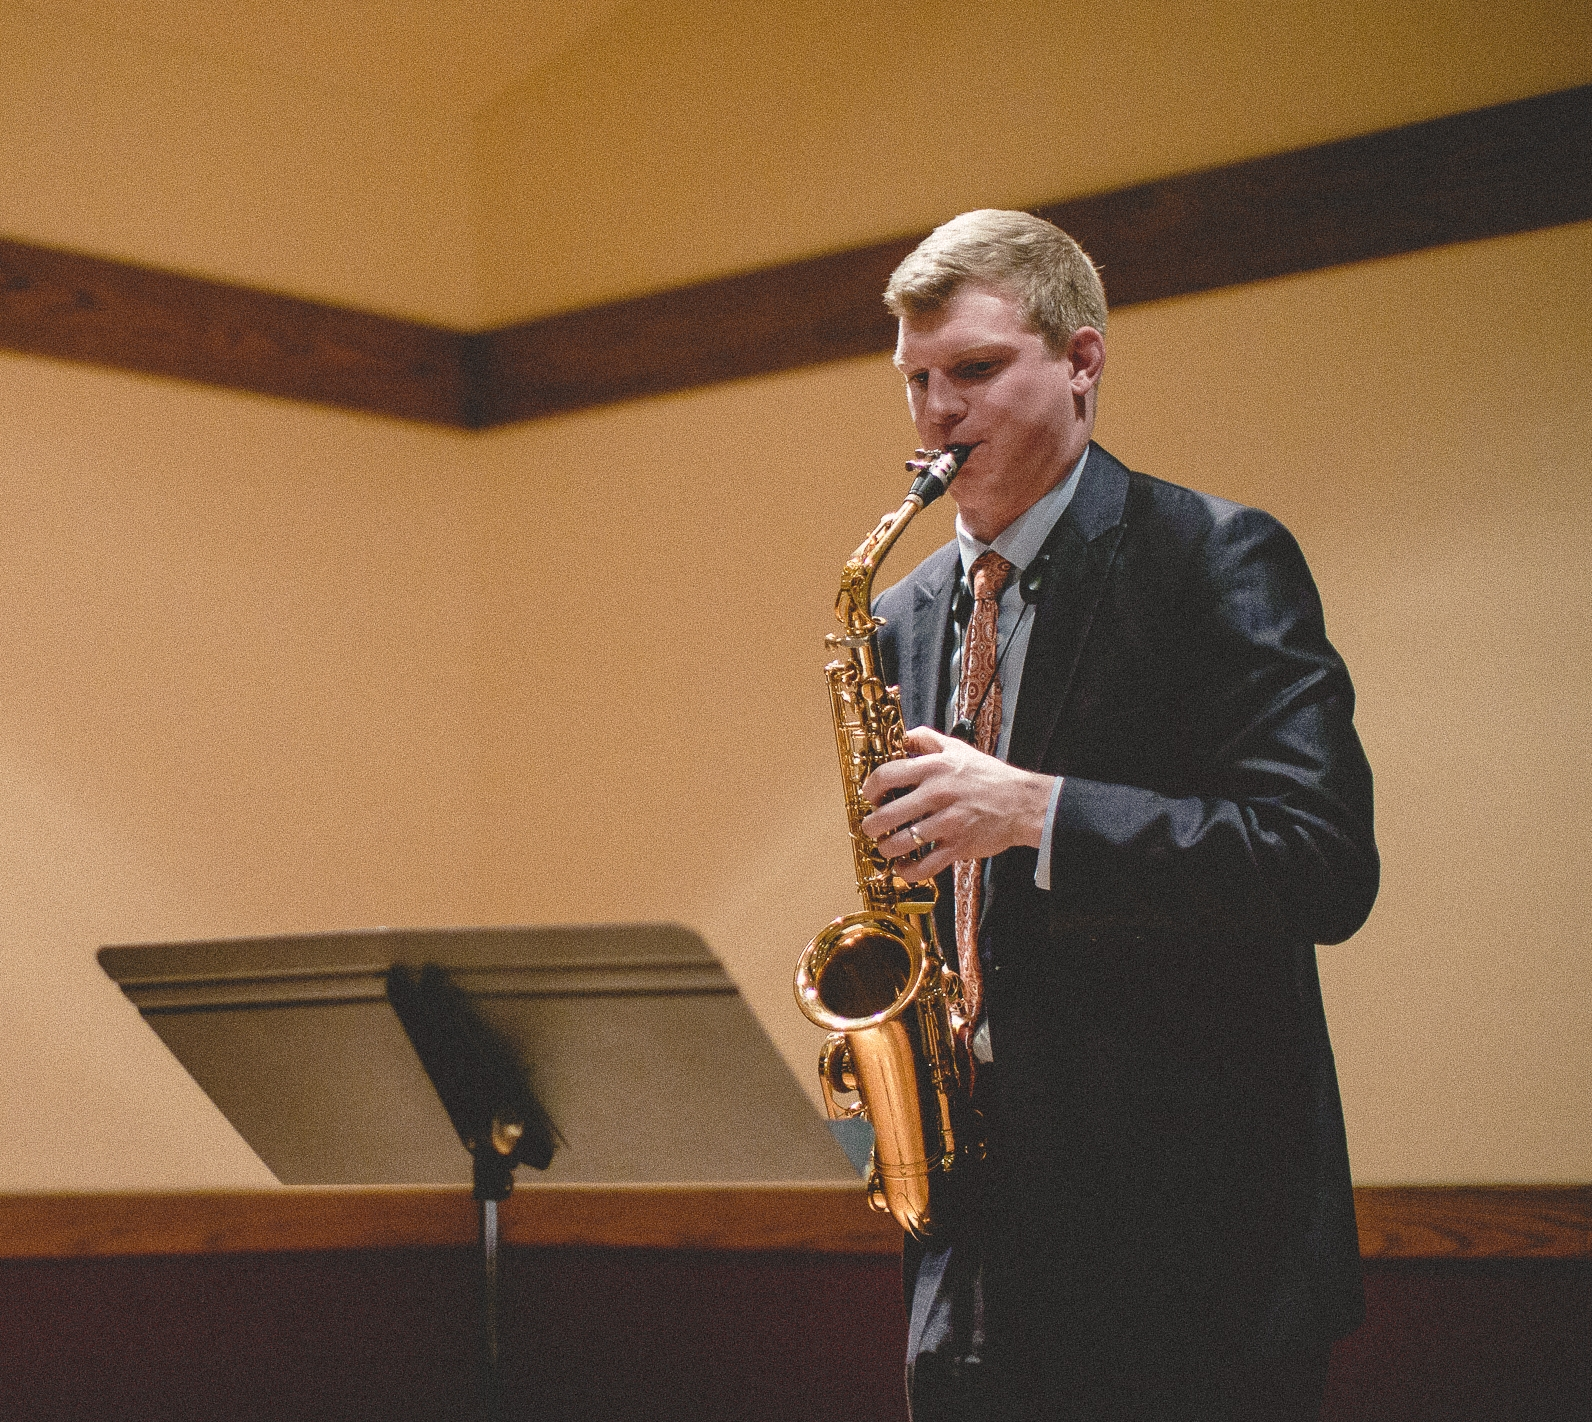 """Joel Gordon - Born in Iowa, grown in Missouri, and sprouting throughout the Midwest,Joel Gordonis a cultivating saxophonist and music educator. Most recently, Joel recorded and released a full-length album, """"Along Those Lines,"""" with the Kansas City-based Matt Cook Collective in 2017.As a saxophonist, Joel was selected as a resident of the 2014 David Liebman Saxophone Masterclass, named winner of the 2014 Missouri Music Teachers Association Woodwind Soloist Competition, and chosen as a semifinalist in the 2013 Naftzger Young Artist Competition. In 2017, Gordon recorded and released an album with the Kansas City-based jazz quintet, the Matt Cook Collective. The group went on a seven city Midwest release tour and is scheduled for a second tour on the West Coast in Summer 2018. As well, Joel will be traveling to the East Coast in Spring 2018 to perform at the 40th International Saxophone Symposium with {tres}, a chamber ensemble devoted to bringing baroque and classical era compositions into the contemporary saxophone repertoire through recording and public recitals. Joel can be heard playing jazz standards and original compositions throughout Missouri and Kansas as a leader of the groups Joel Gordon's Happy Habitat and the Joel Gordon Trio. Joel studied jazz improvisation with Tim AuBuchon and Matt Otto and classical saxophone with Randall Smith and José A. Zayas Cabán. Additional instructors include Bob Long, Neil Ostercamp, and Tim Timmons.Joel is passionate about advancing music through education. In 2015, Joel was named a Presser Foundation Scholar and was a fellow in the TruScholars Research Symposium, exploring the development of jazz education in the midwest. Joel coordinates school jazz clinics as Education Director of the Matt Cook Collective, having had performed for over 1500 midwest public school students. As well, Joel continues to develop his teaching reference"""